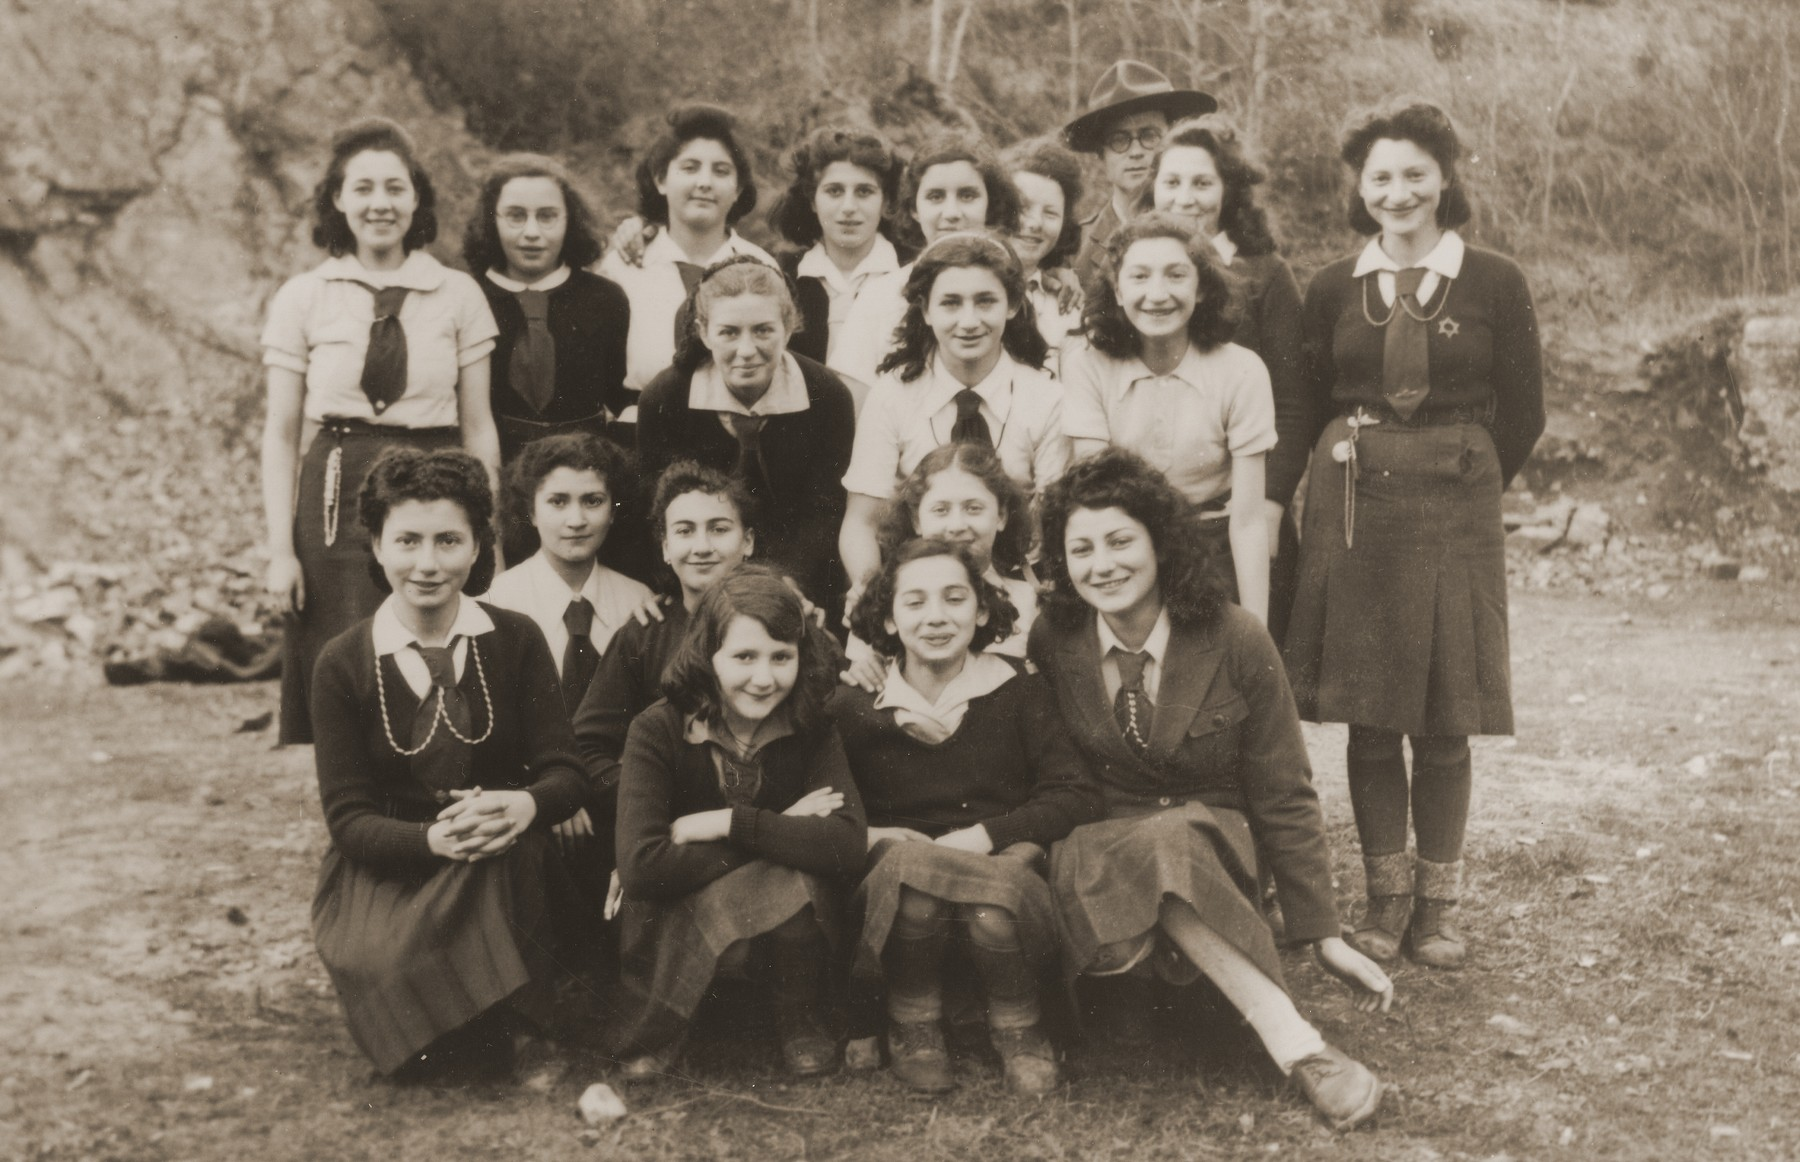 Group portrait of the members of Simone Weil's troop of the Eclaireurs Israelites de France (Jewish Scouts of France).  The name of her section was Eretz Yisrael (The Land of Israel).